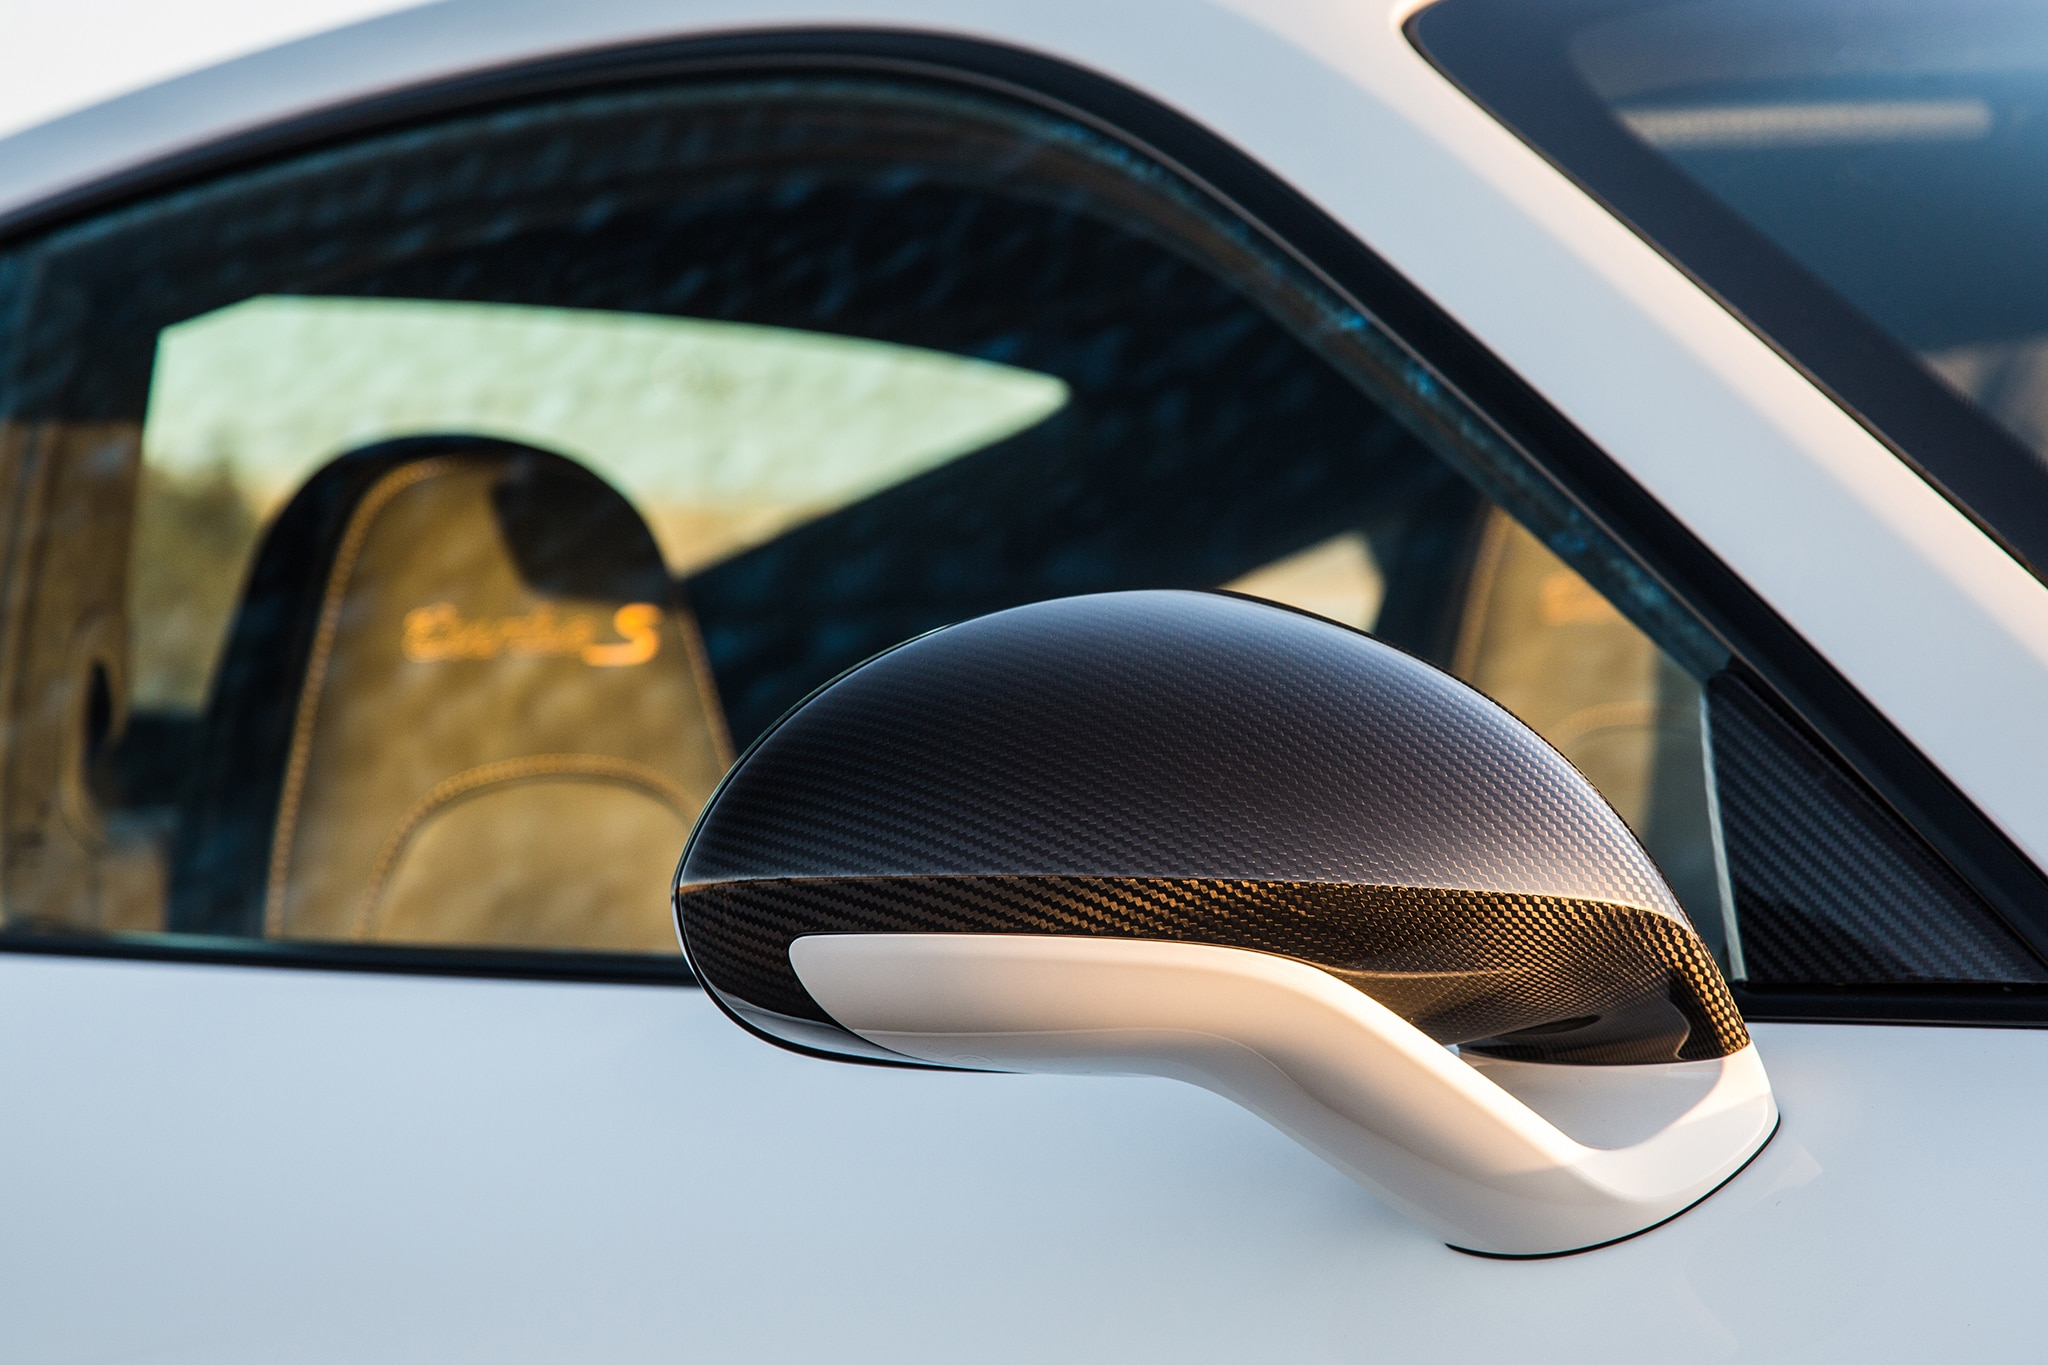 2018 Porsche 911 Turbo S Exclusive Side Mirror 02